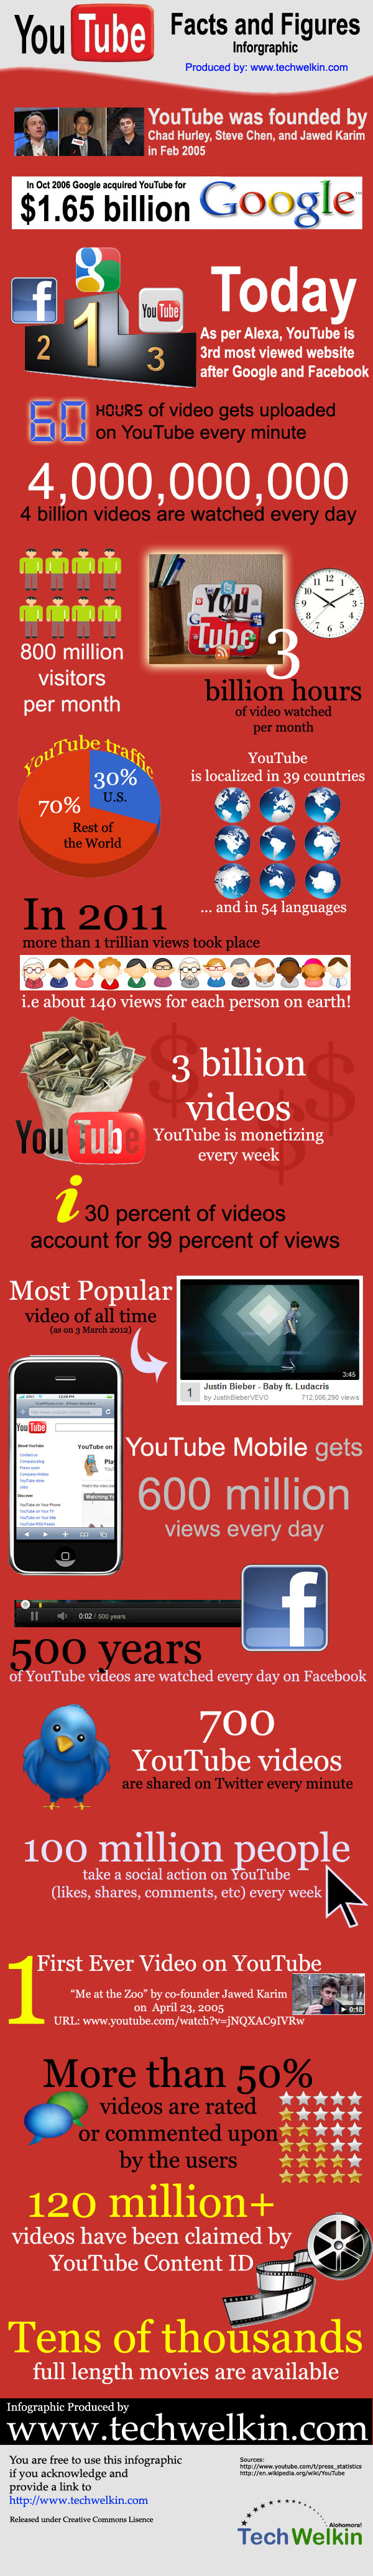 Youtube facts and statistics by TechWelkin.com